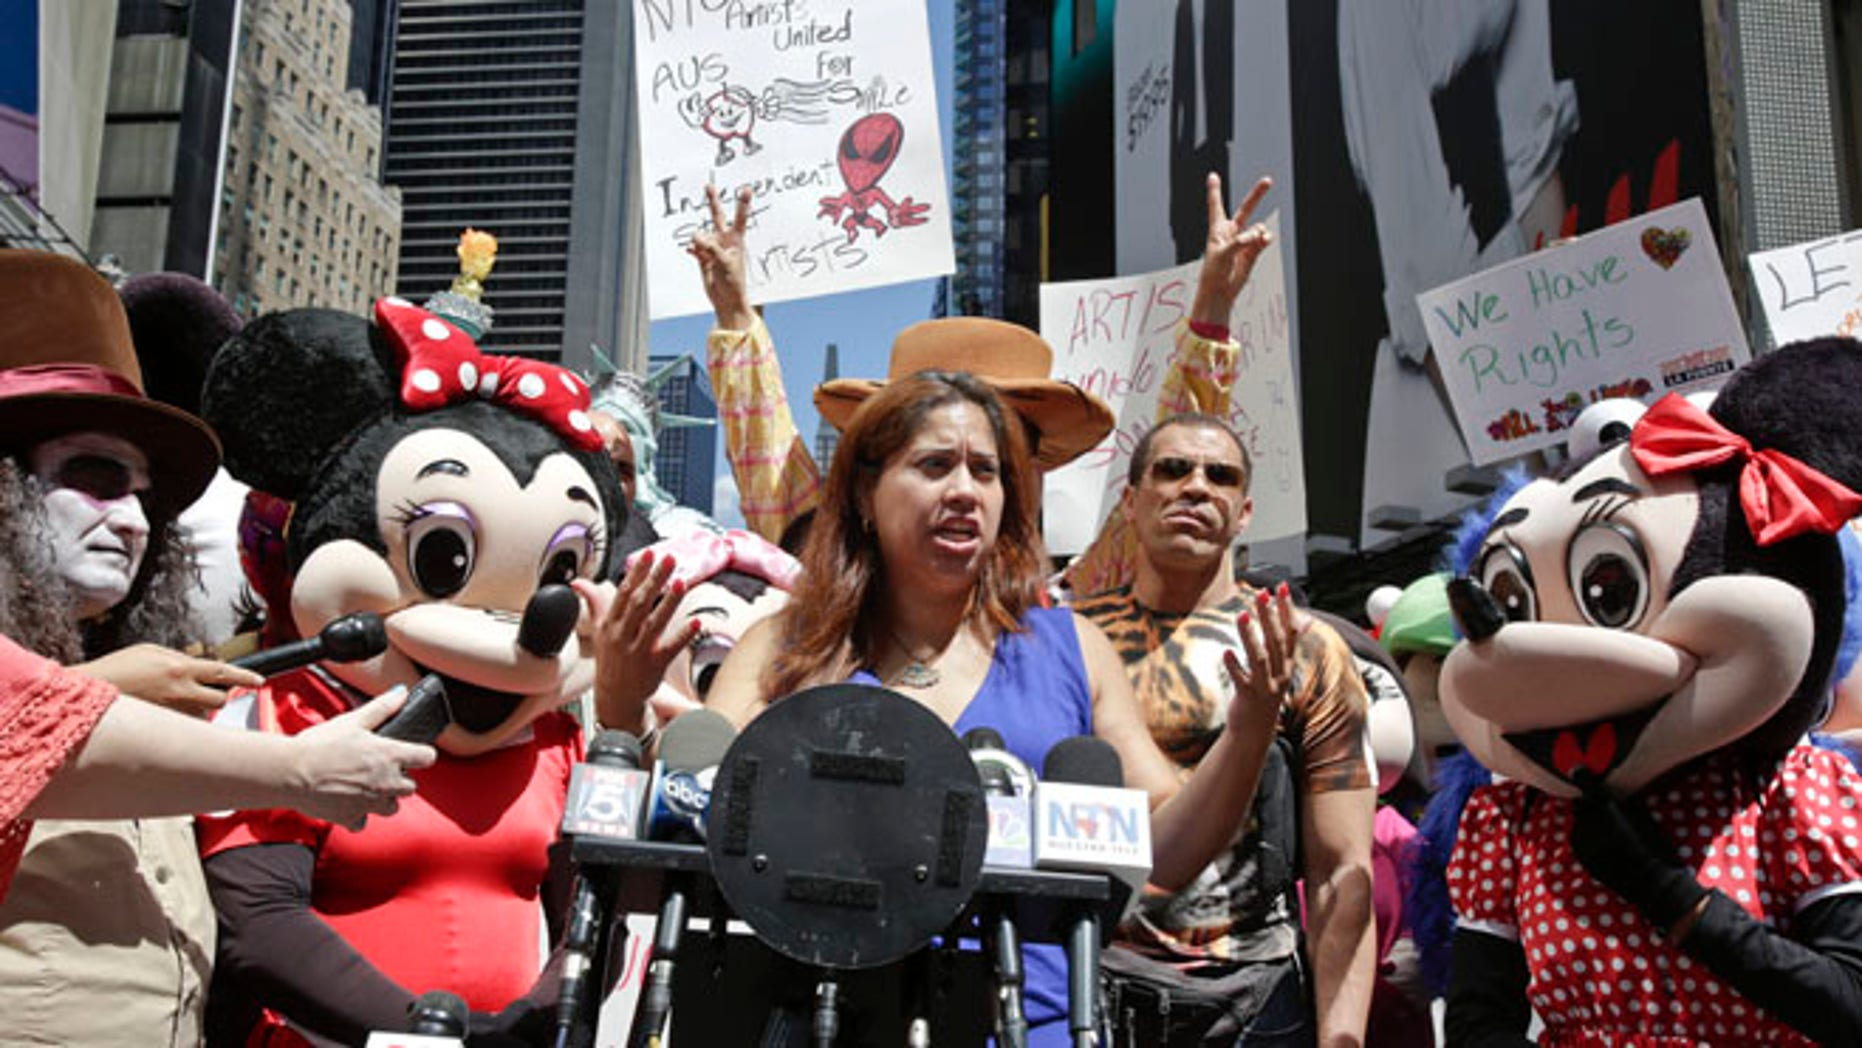 Aug 19, 2014: Lucia Gomez, center, executive director of La Fuente, speaks during a press conference at Times Square in New York.